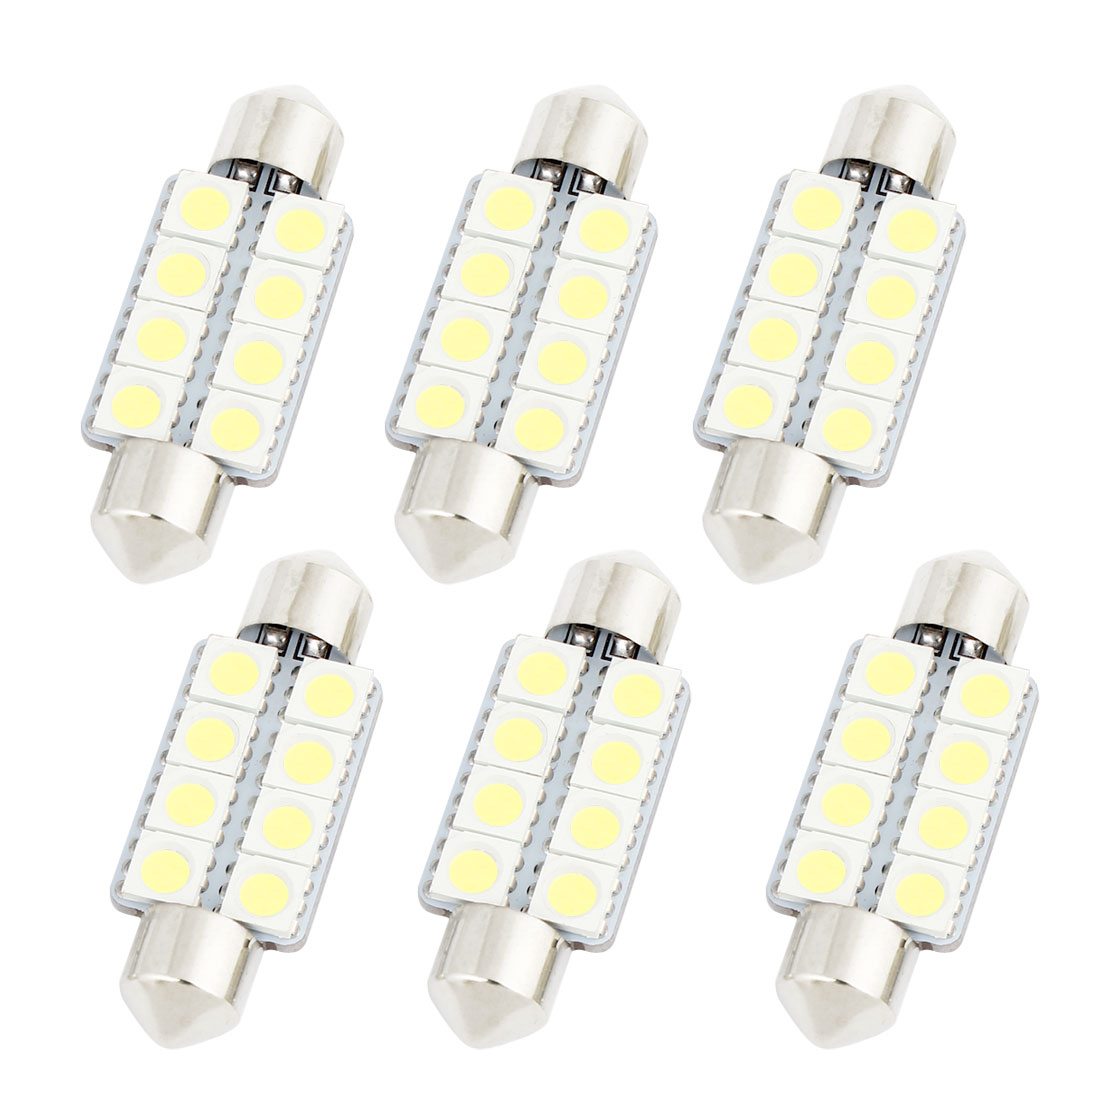 6pcs 39mm 5050 8-SMD White LED Festoon Map Light DE3423 DE3425 6418 C5W Internal